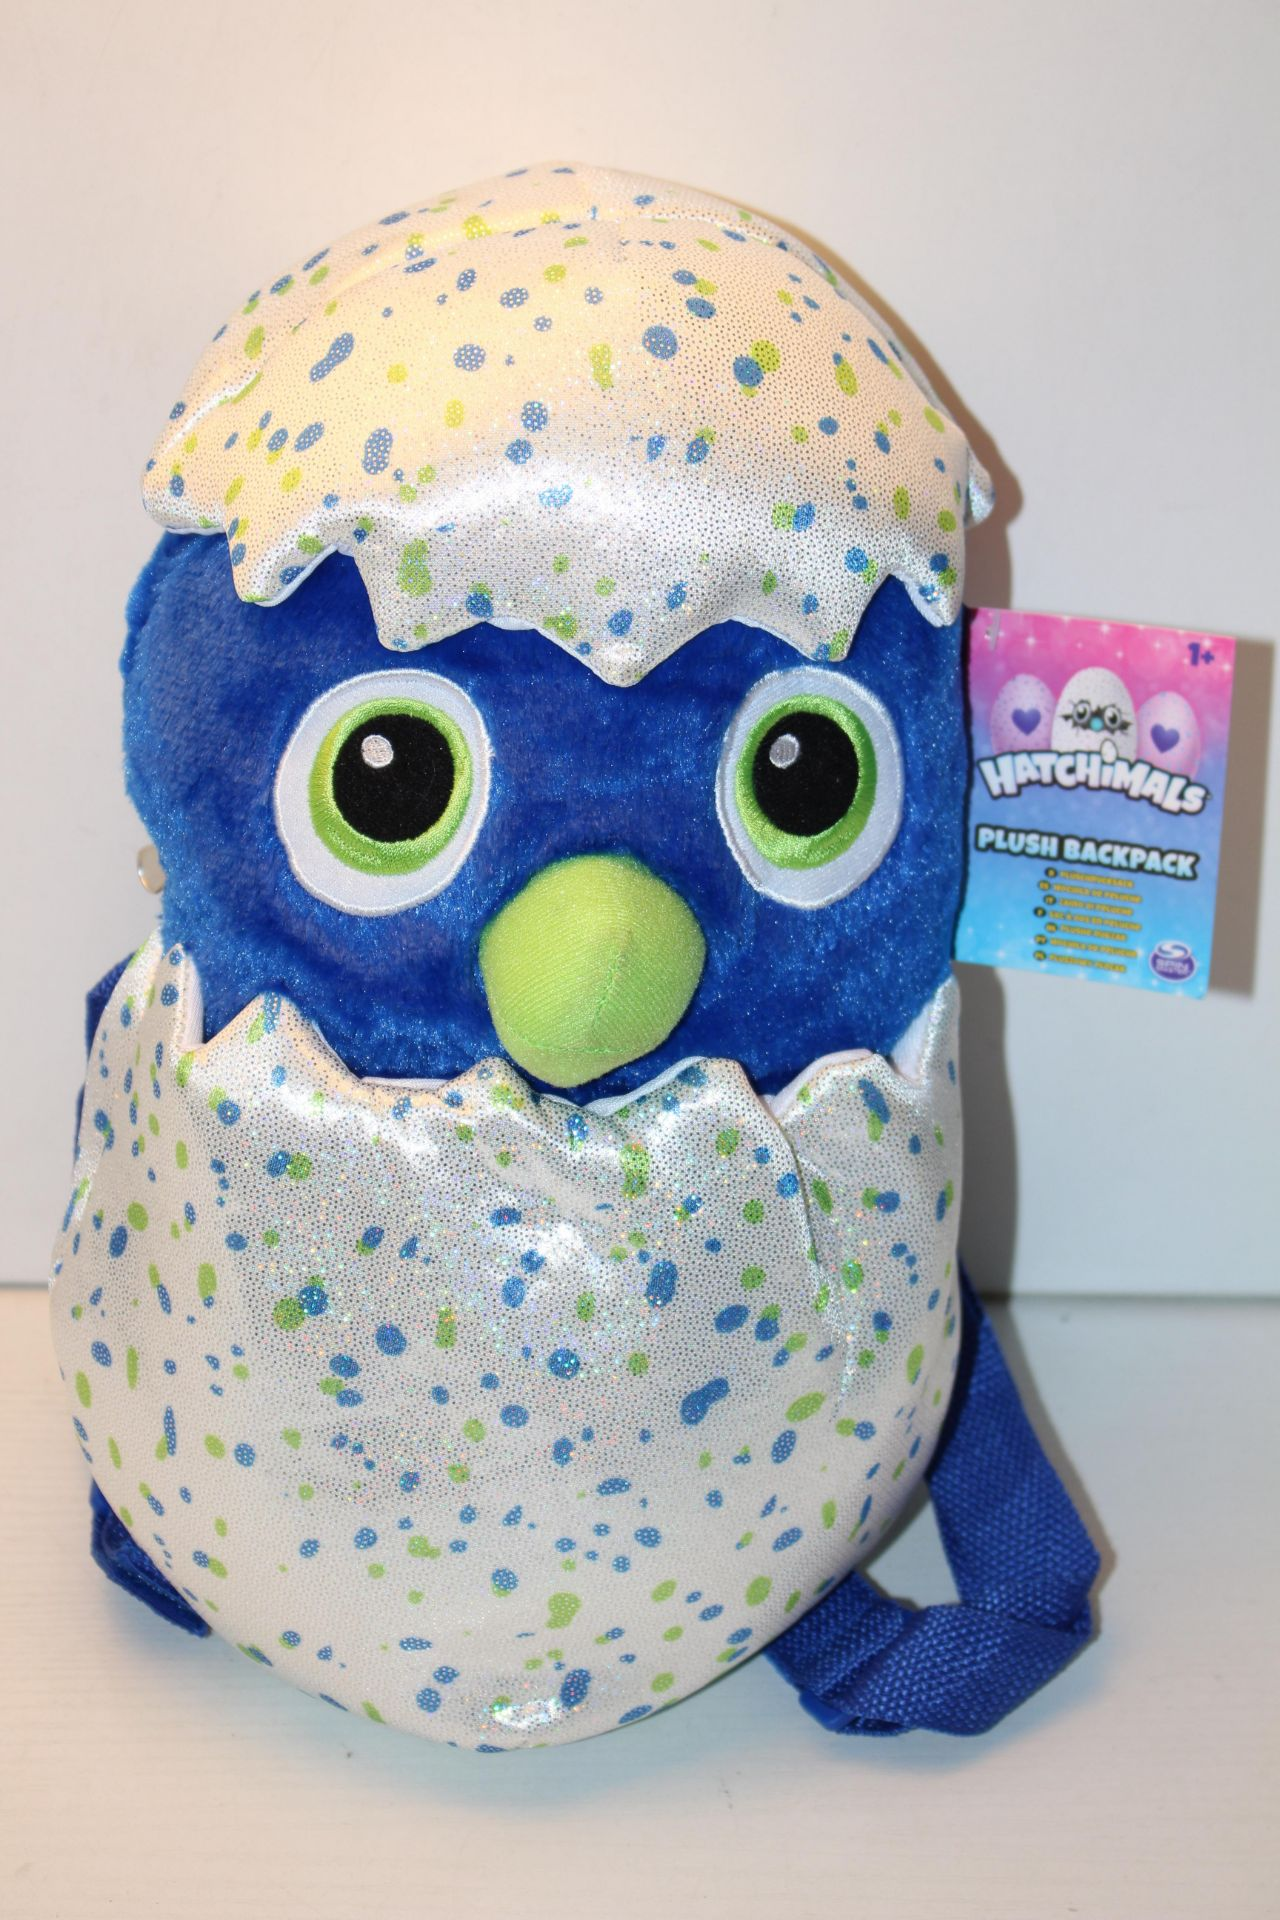 2X UNBOXED WITH TAGS HATCHIMALS PLUSH BACKPACKSCondition ReportAppraisal Available on Request- All